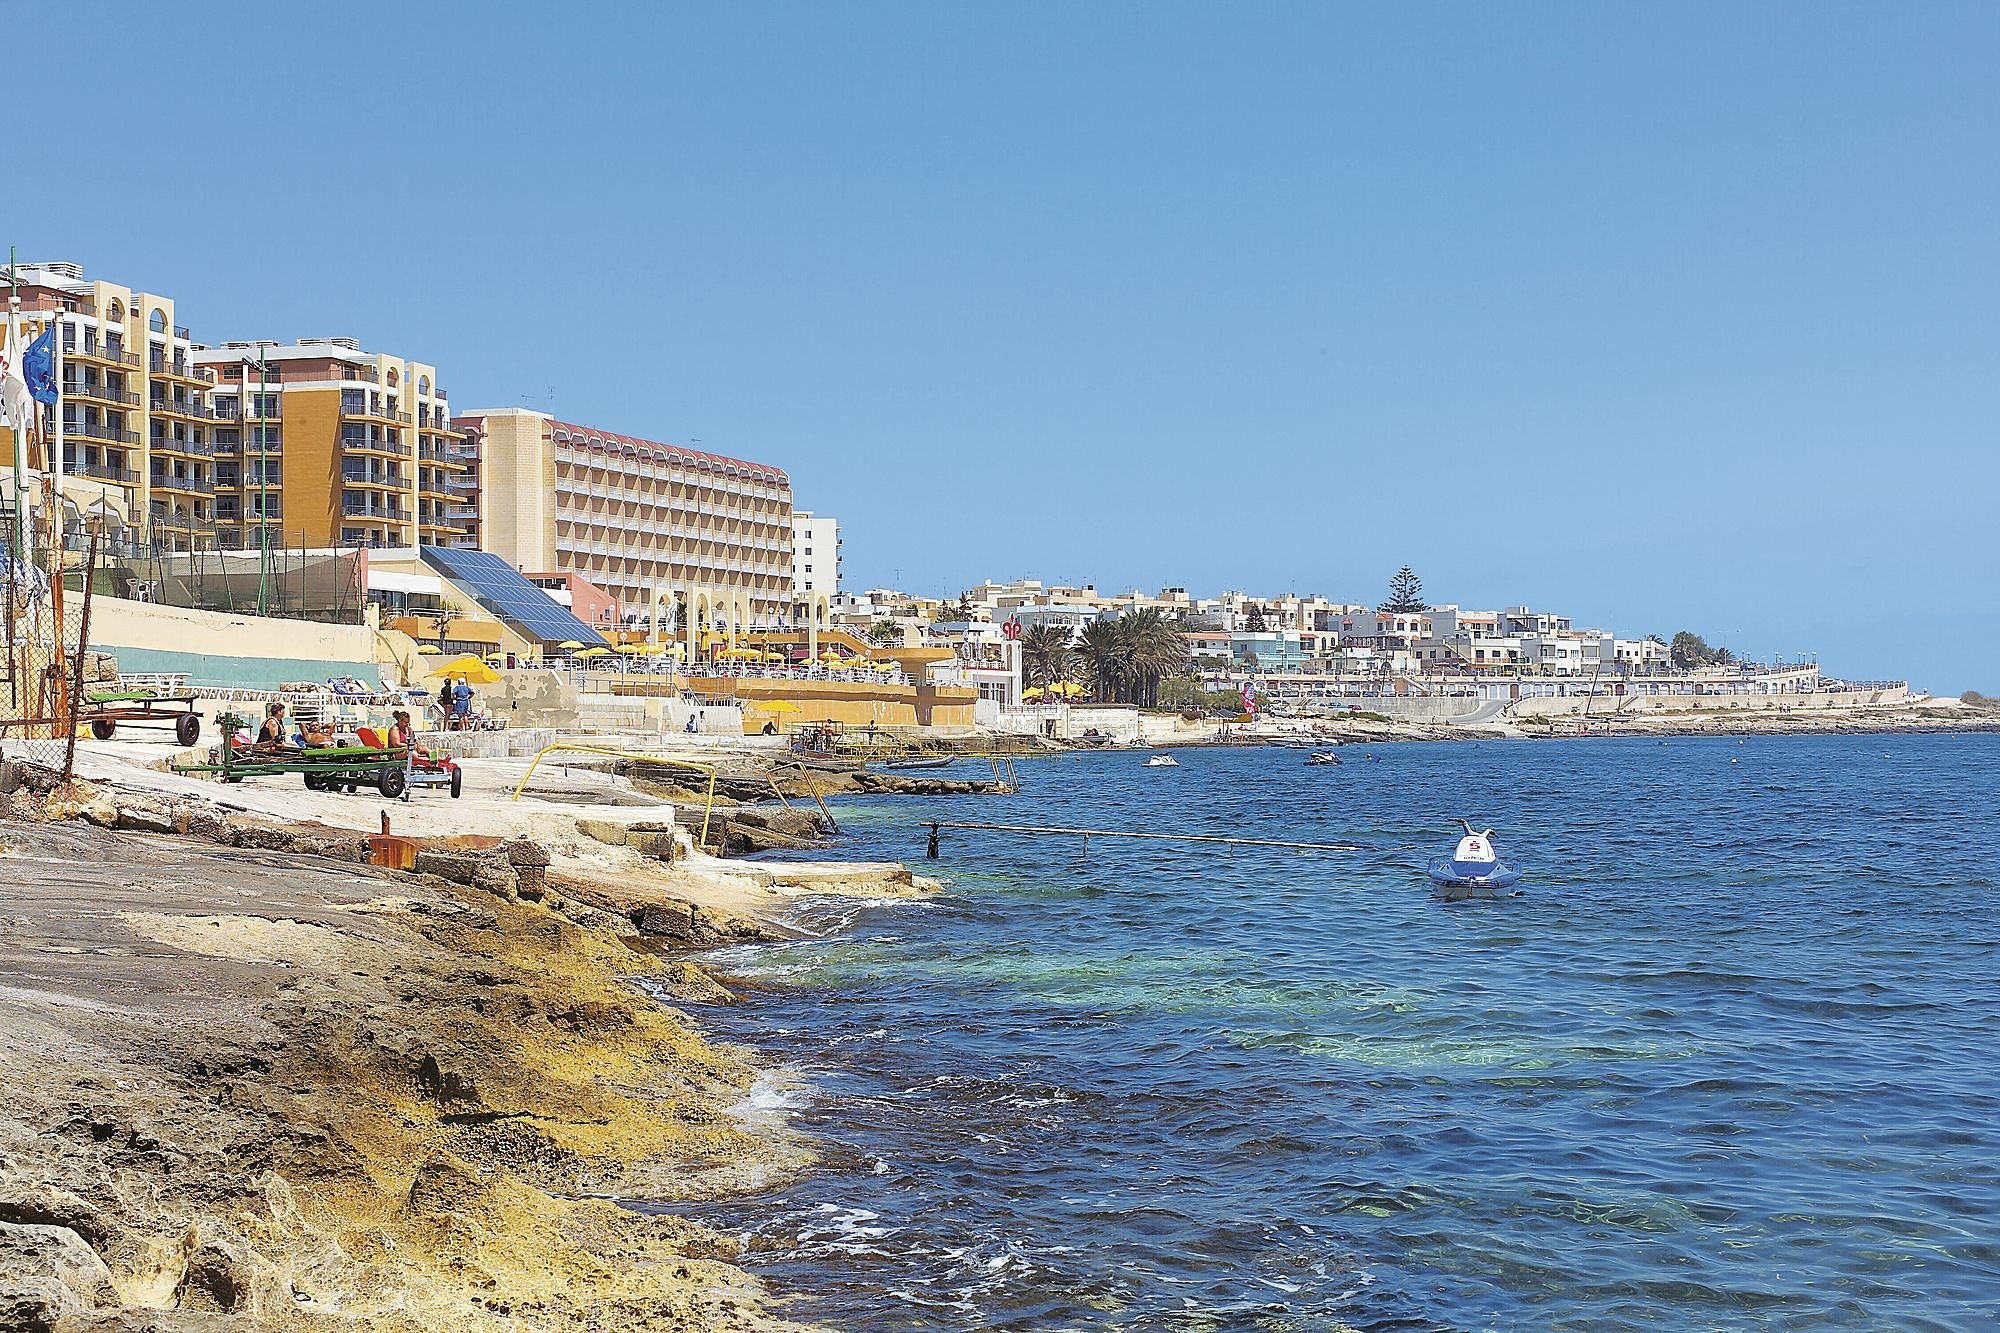 St Paul's Bay, Malta, kuva 3/ 5